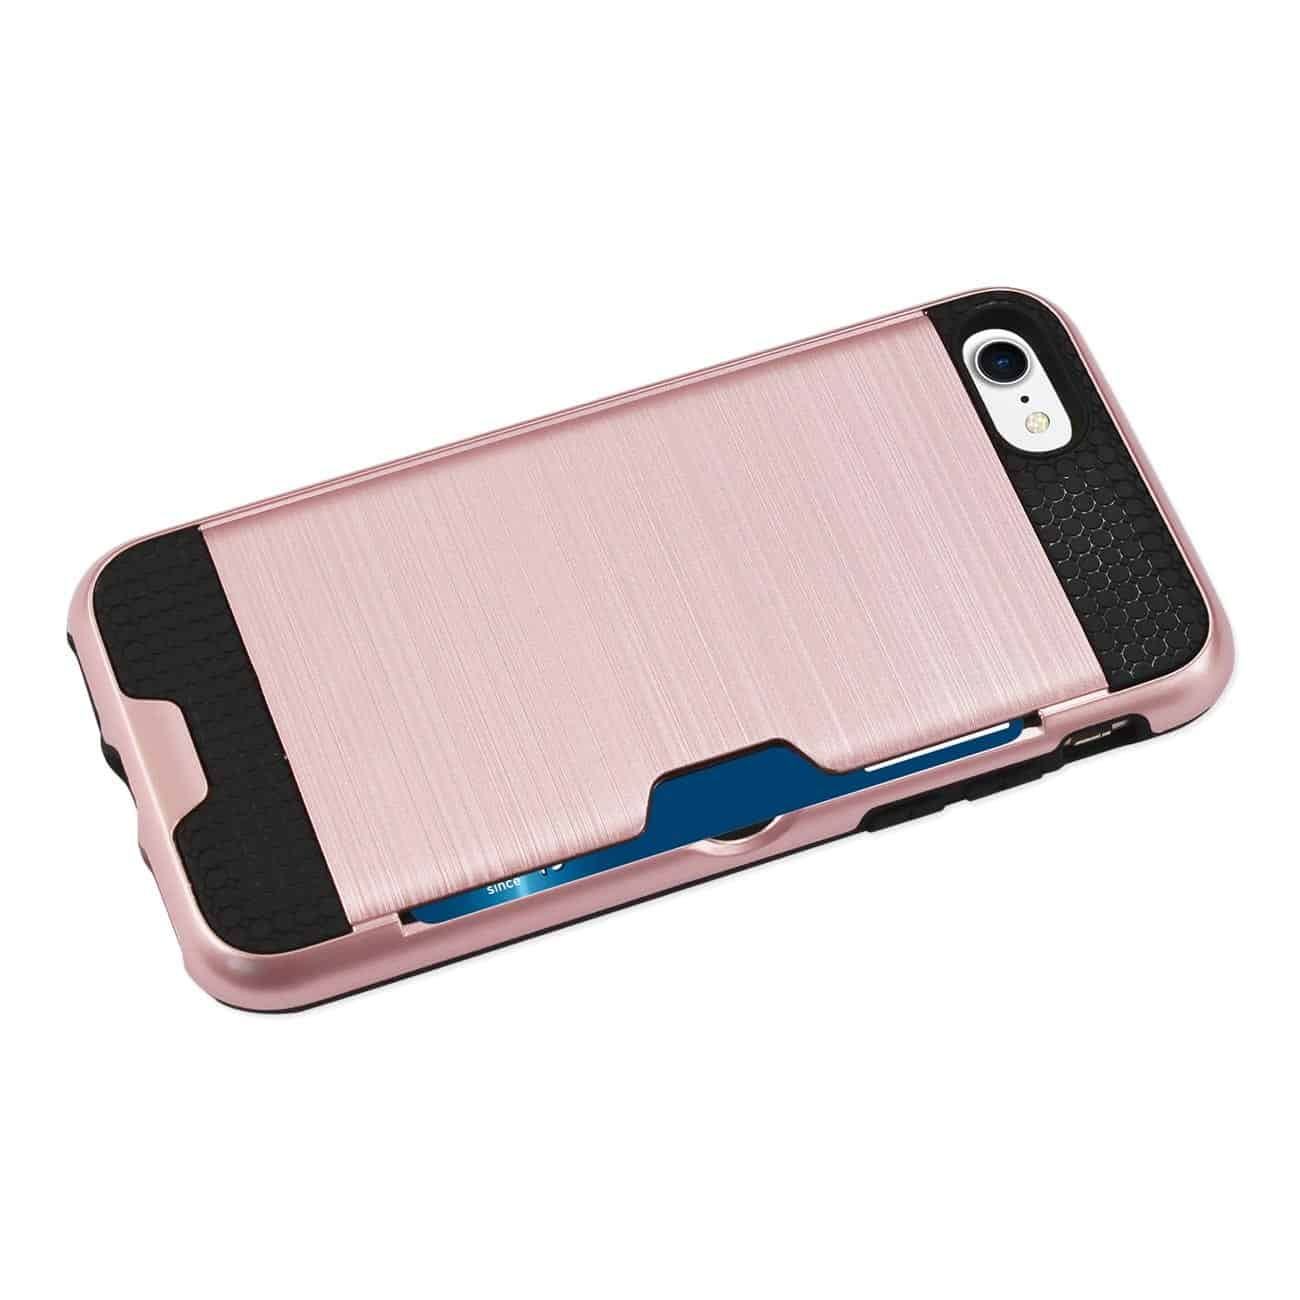 IPHONE 7 SLIM ARMOR HYBRID CASE WITH CARD HOLDER IN ROSE GOLD